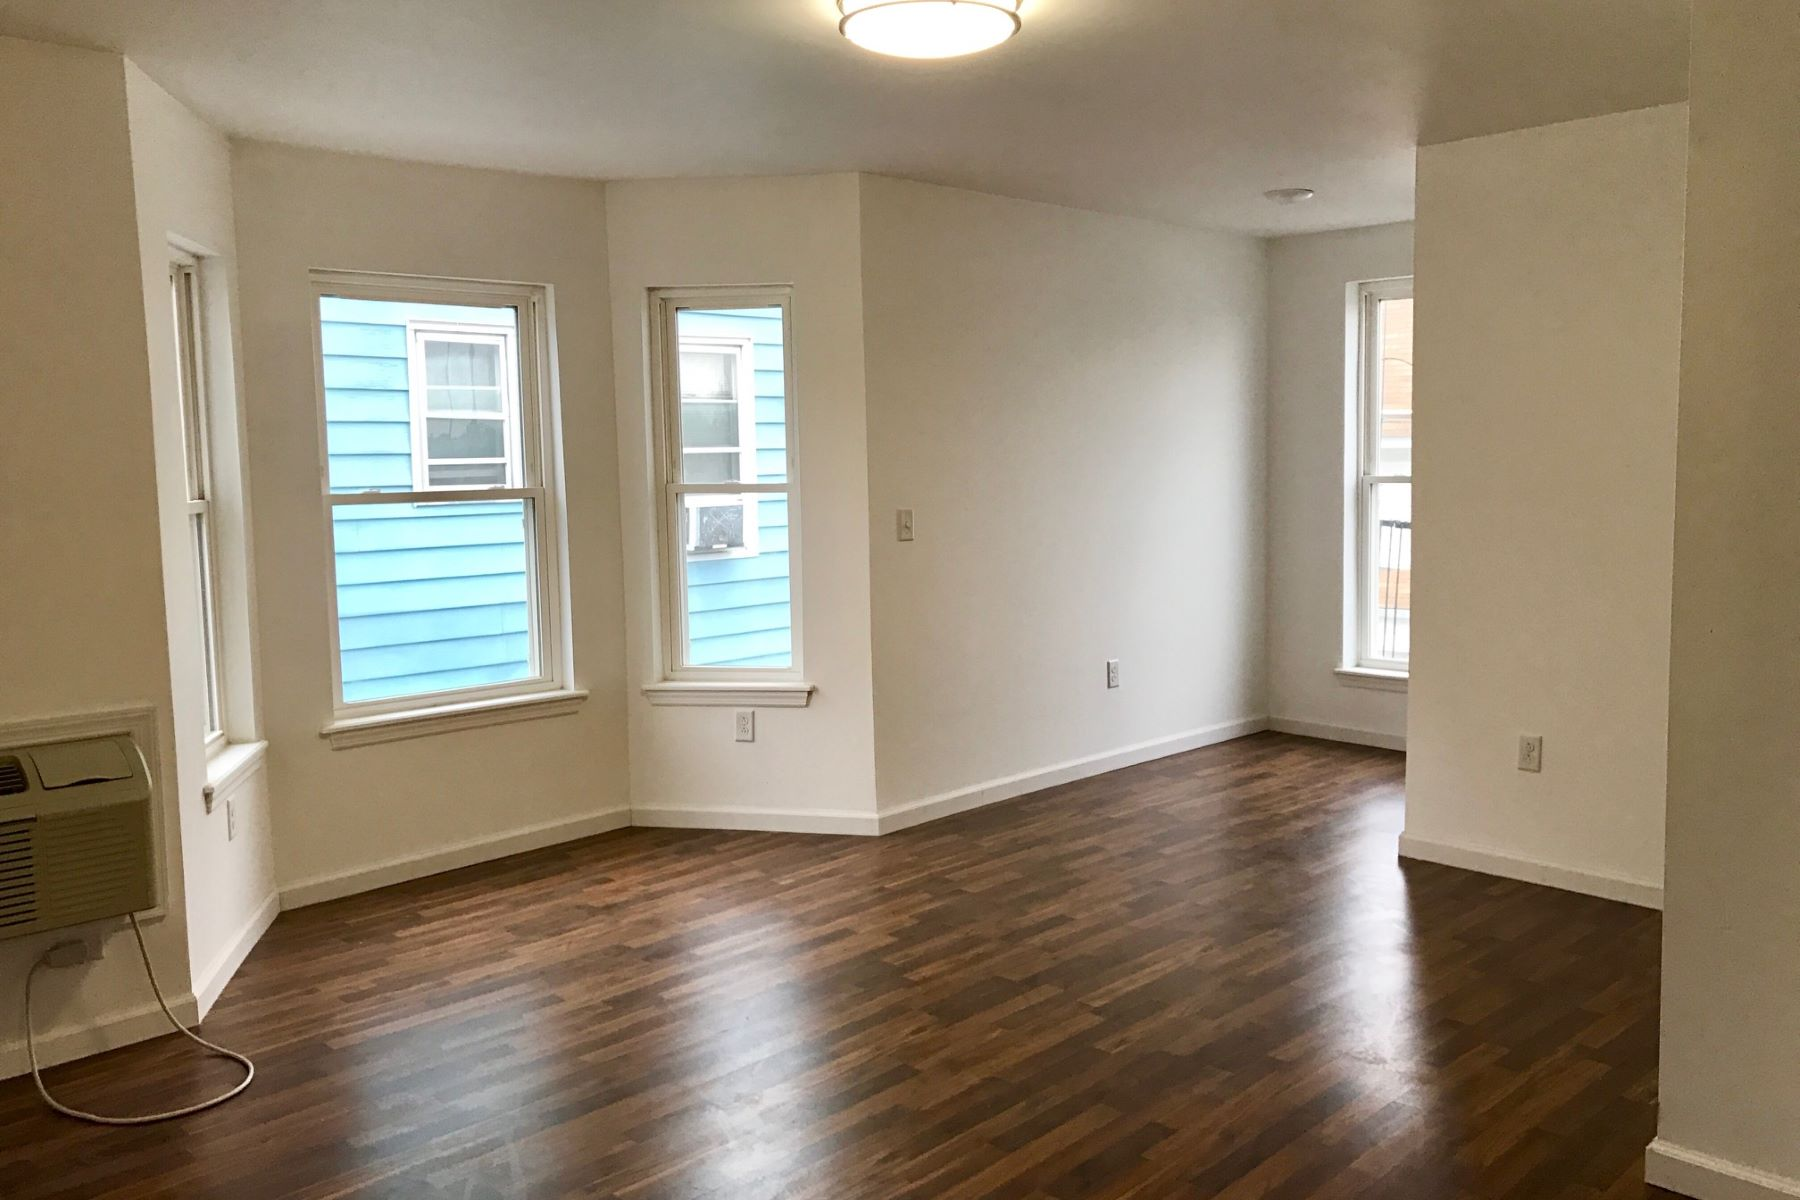 Apartment for Rent at Newly Renovated Spacious 815 Boulevard #2 Bayonne, New Jersey 07002 United States